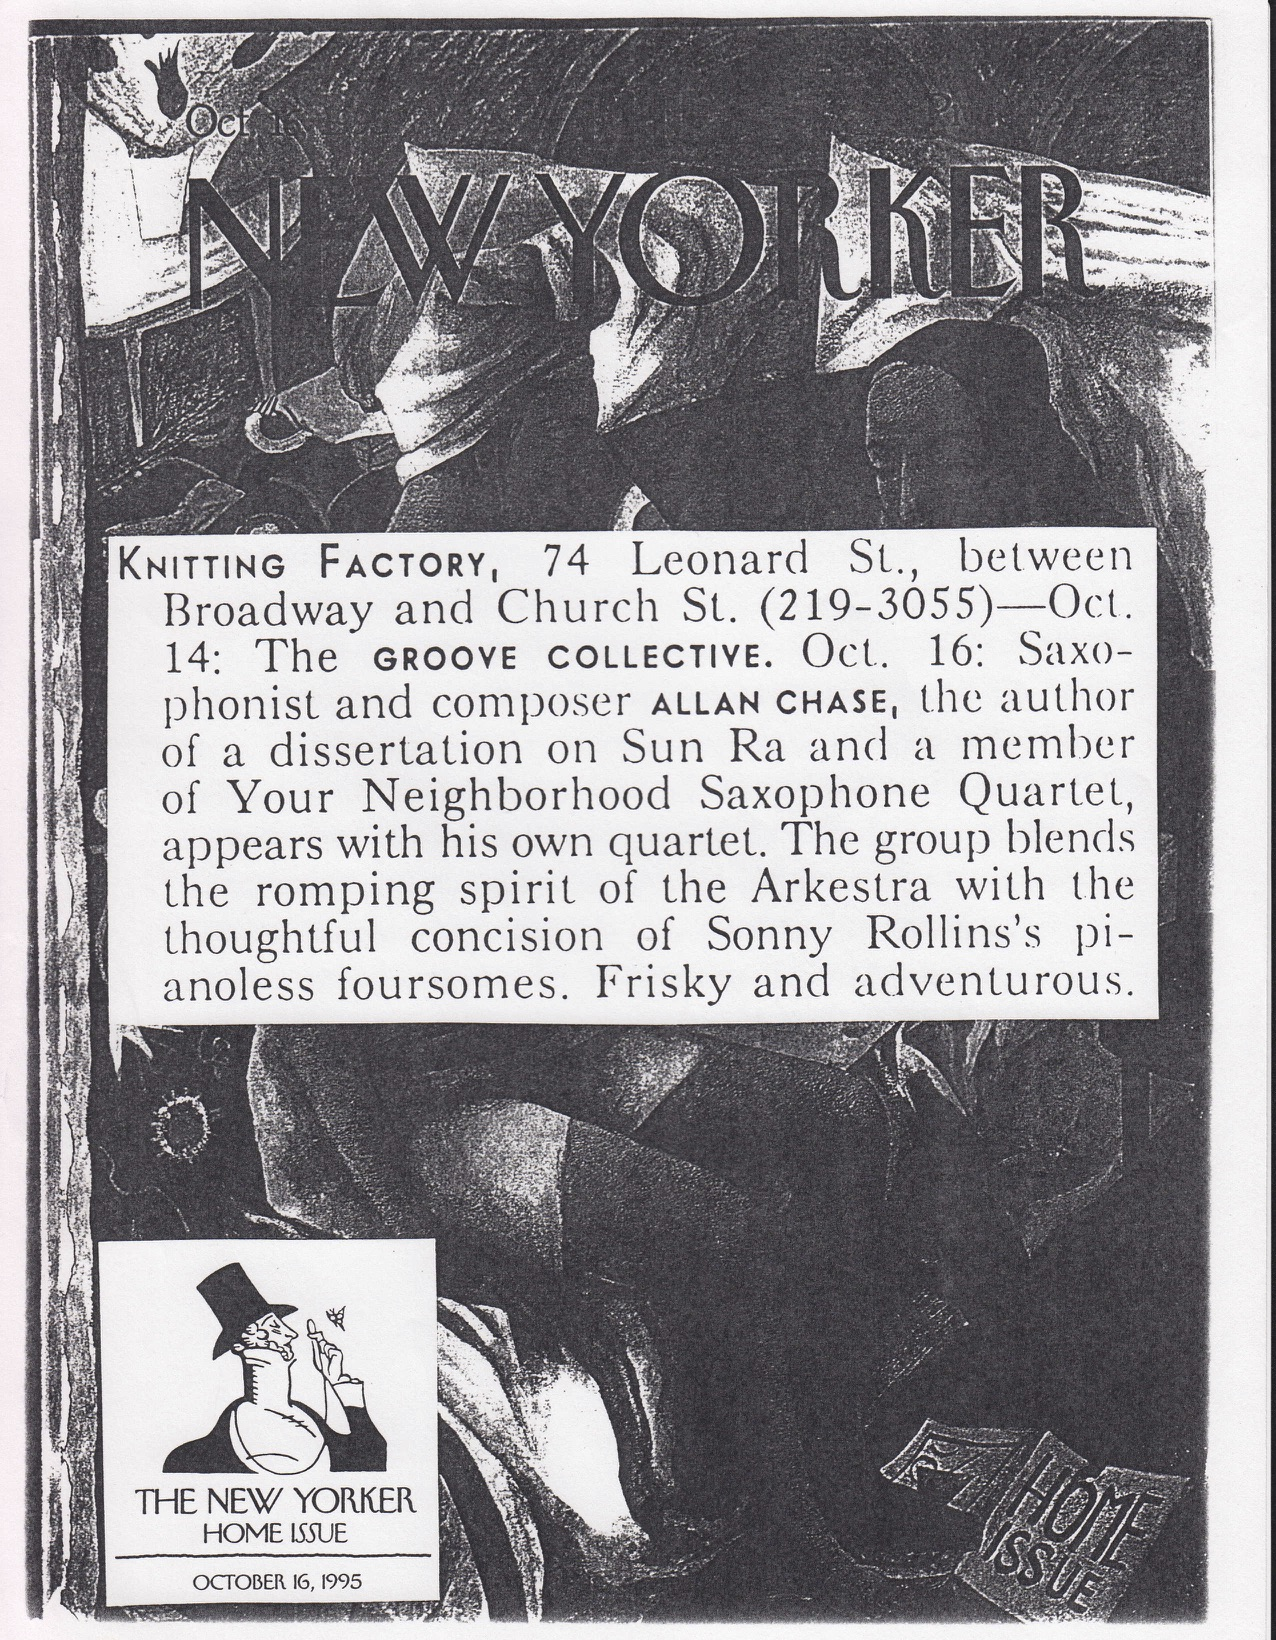 Chase 4 Preview-New Yorker 11.16.95.jpg